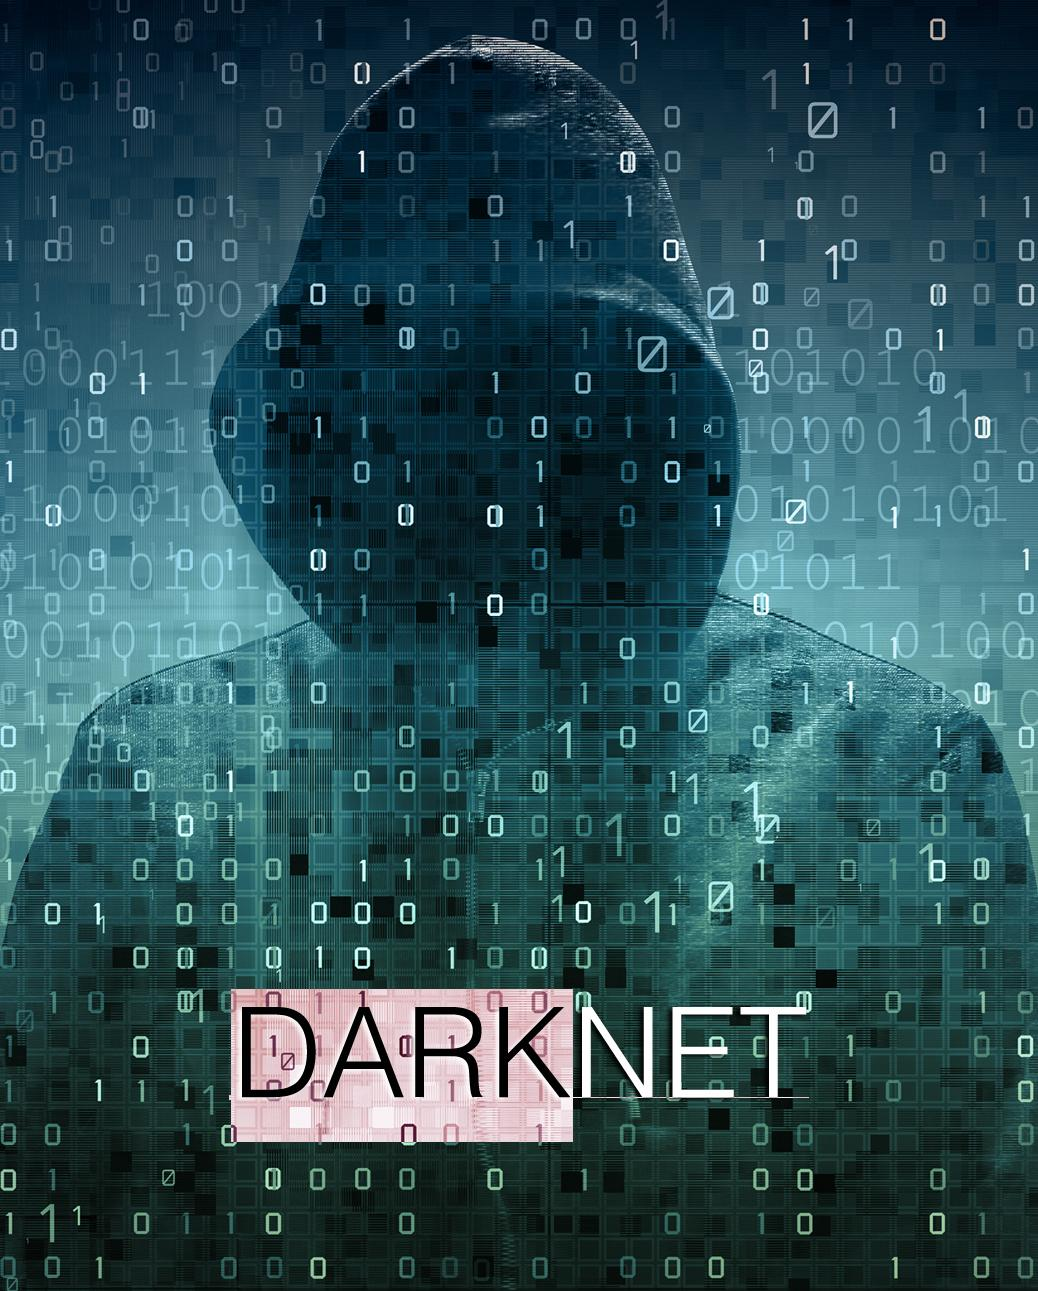 Darknet boys gydra тор tor браузер hyrda